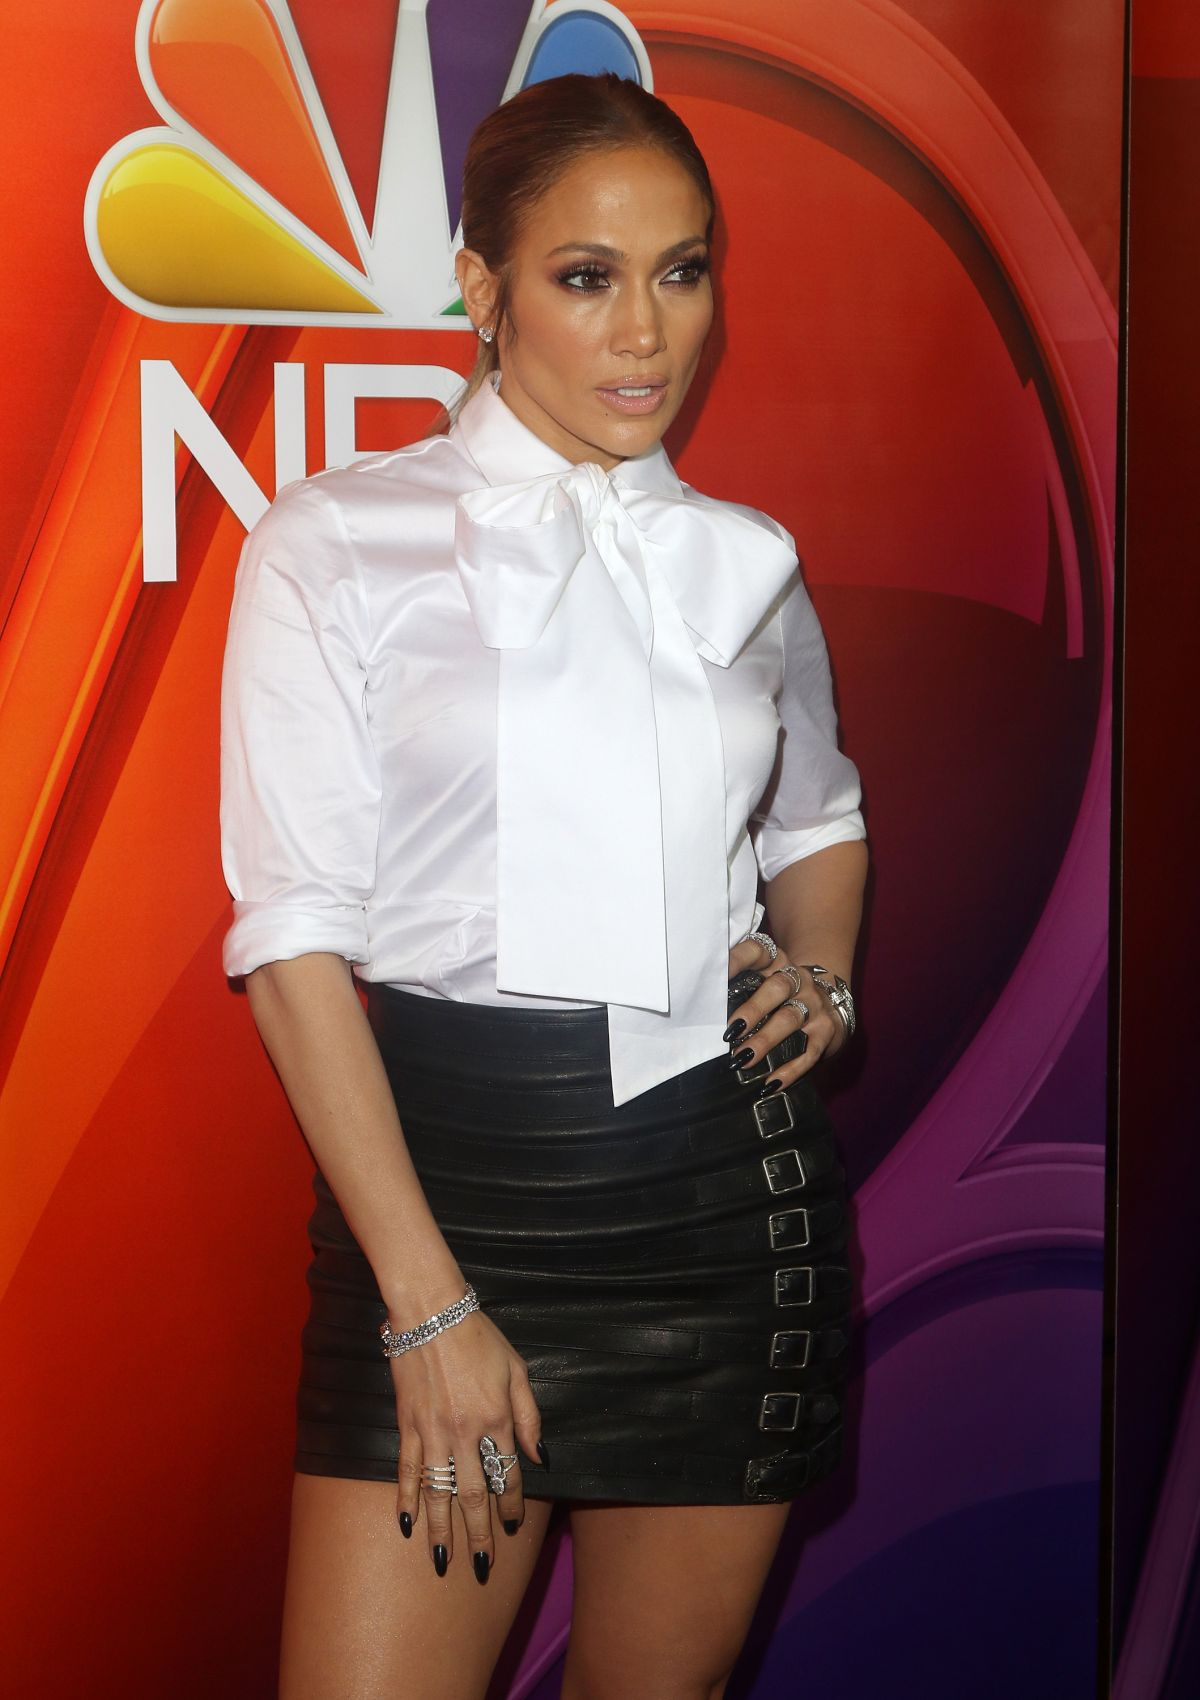 JENNIFER LOPEZ at NBC/Universal 2017 Winter TCA Press Tour in Pasadena 01/18/2017